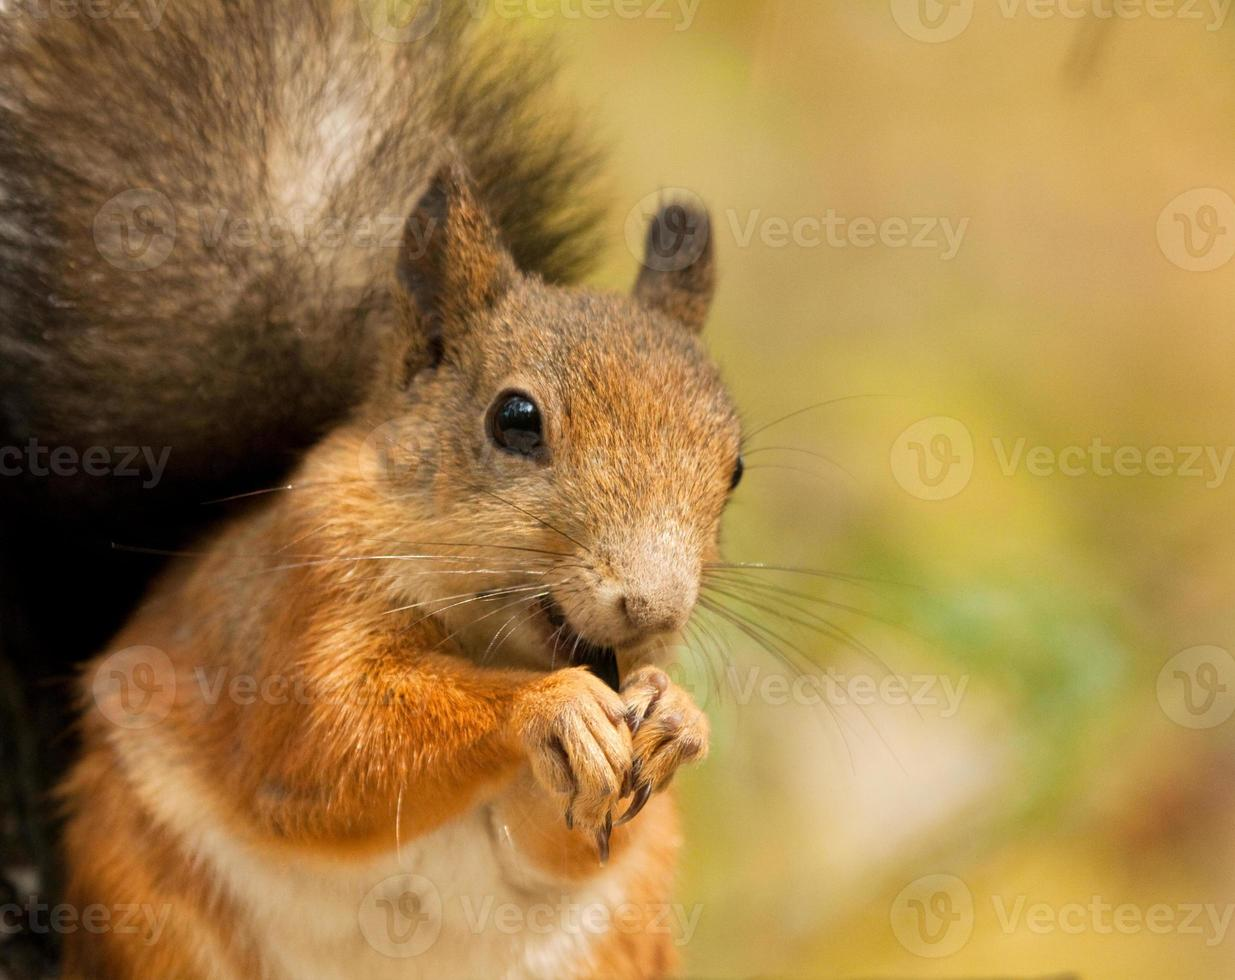 Squirrel with a sunflower seeds photo